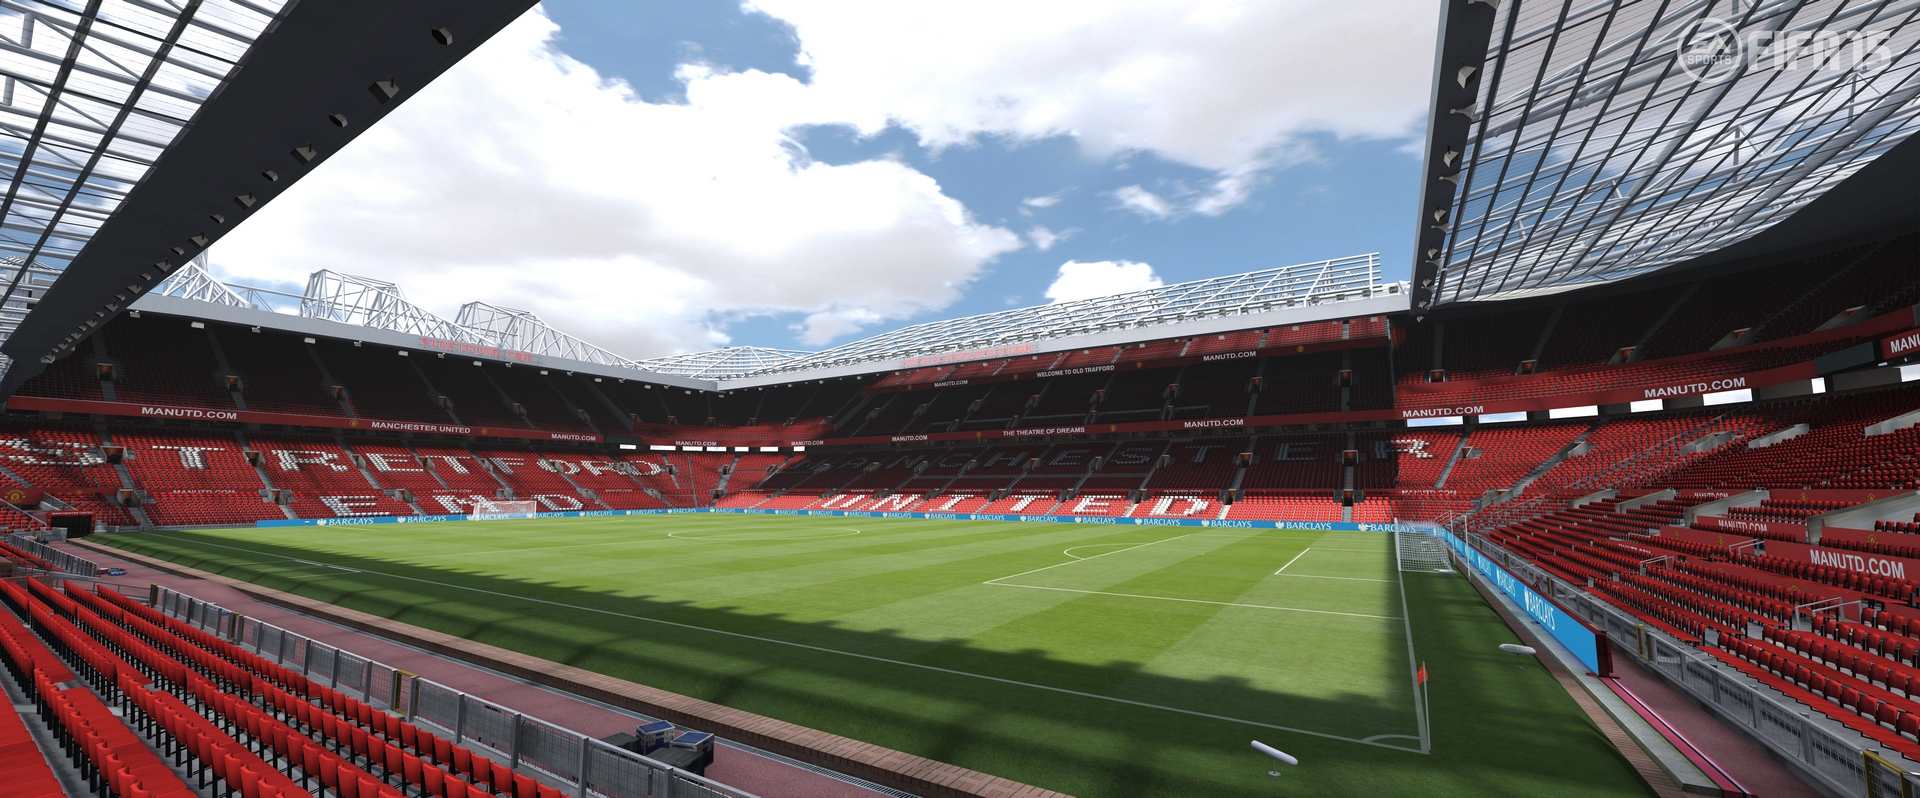 fifa-15-old-trafford-manchester